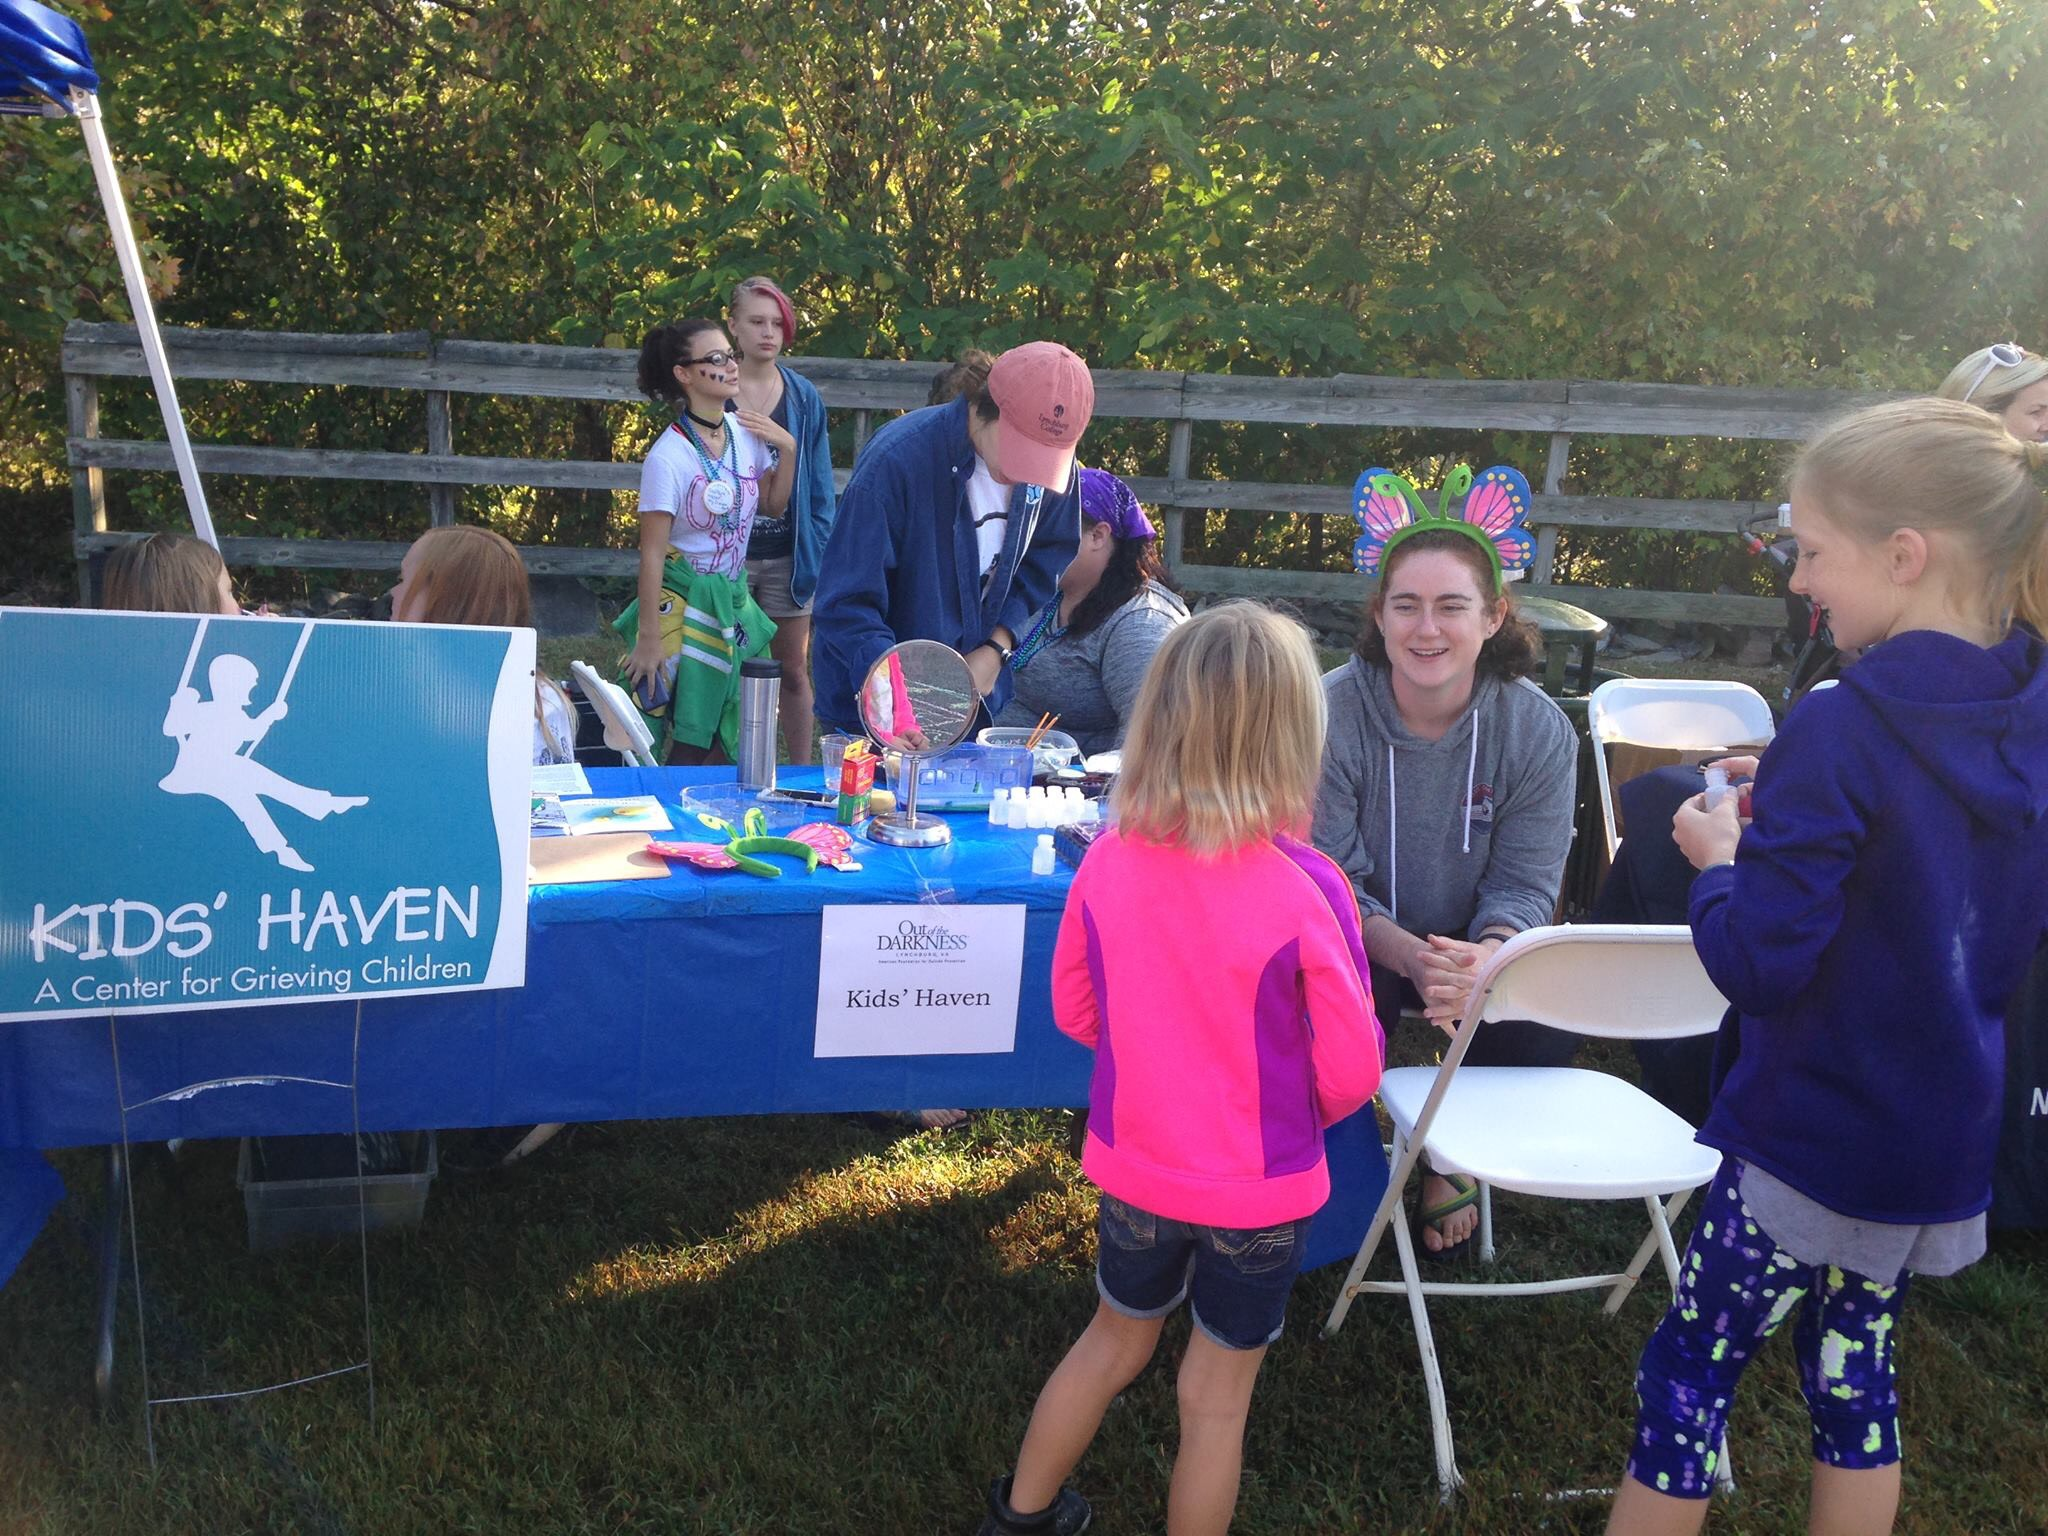 Our Vision - Kids' Haven strives to provide access to free grief support for every grieving child in the Greater Lynchburg, Virginia area